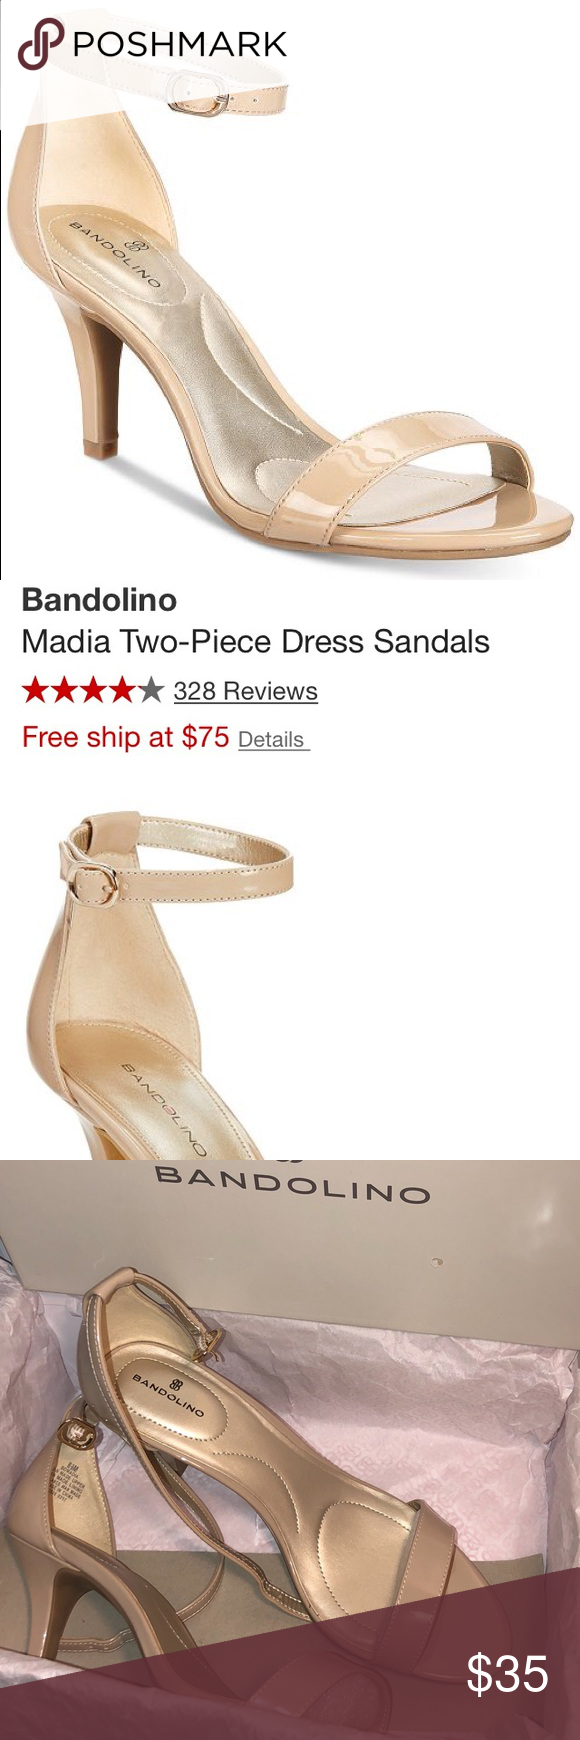 944a6d0a29933b Bandolino Madia Two Piece Dress Sandals Size 8 1 2 These super comfy dress  sandals